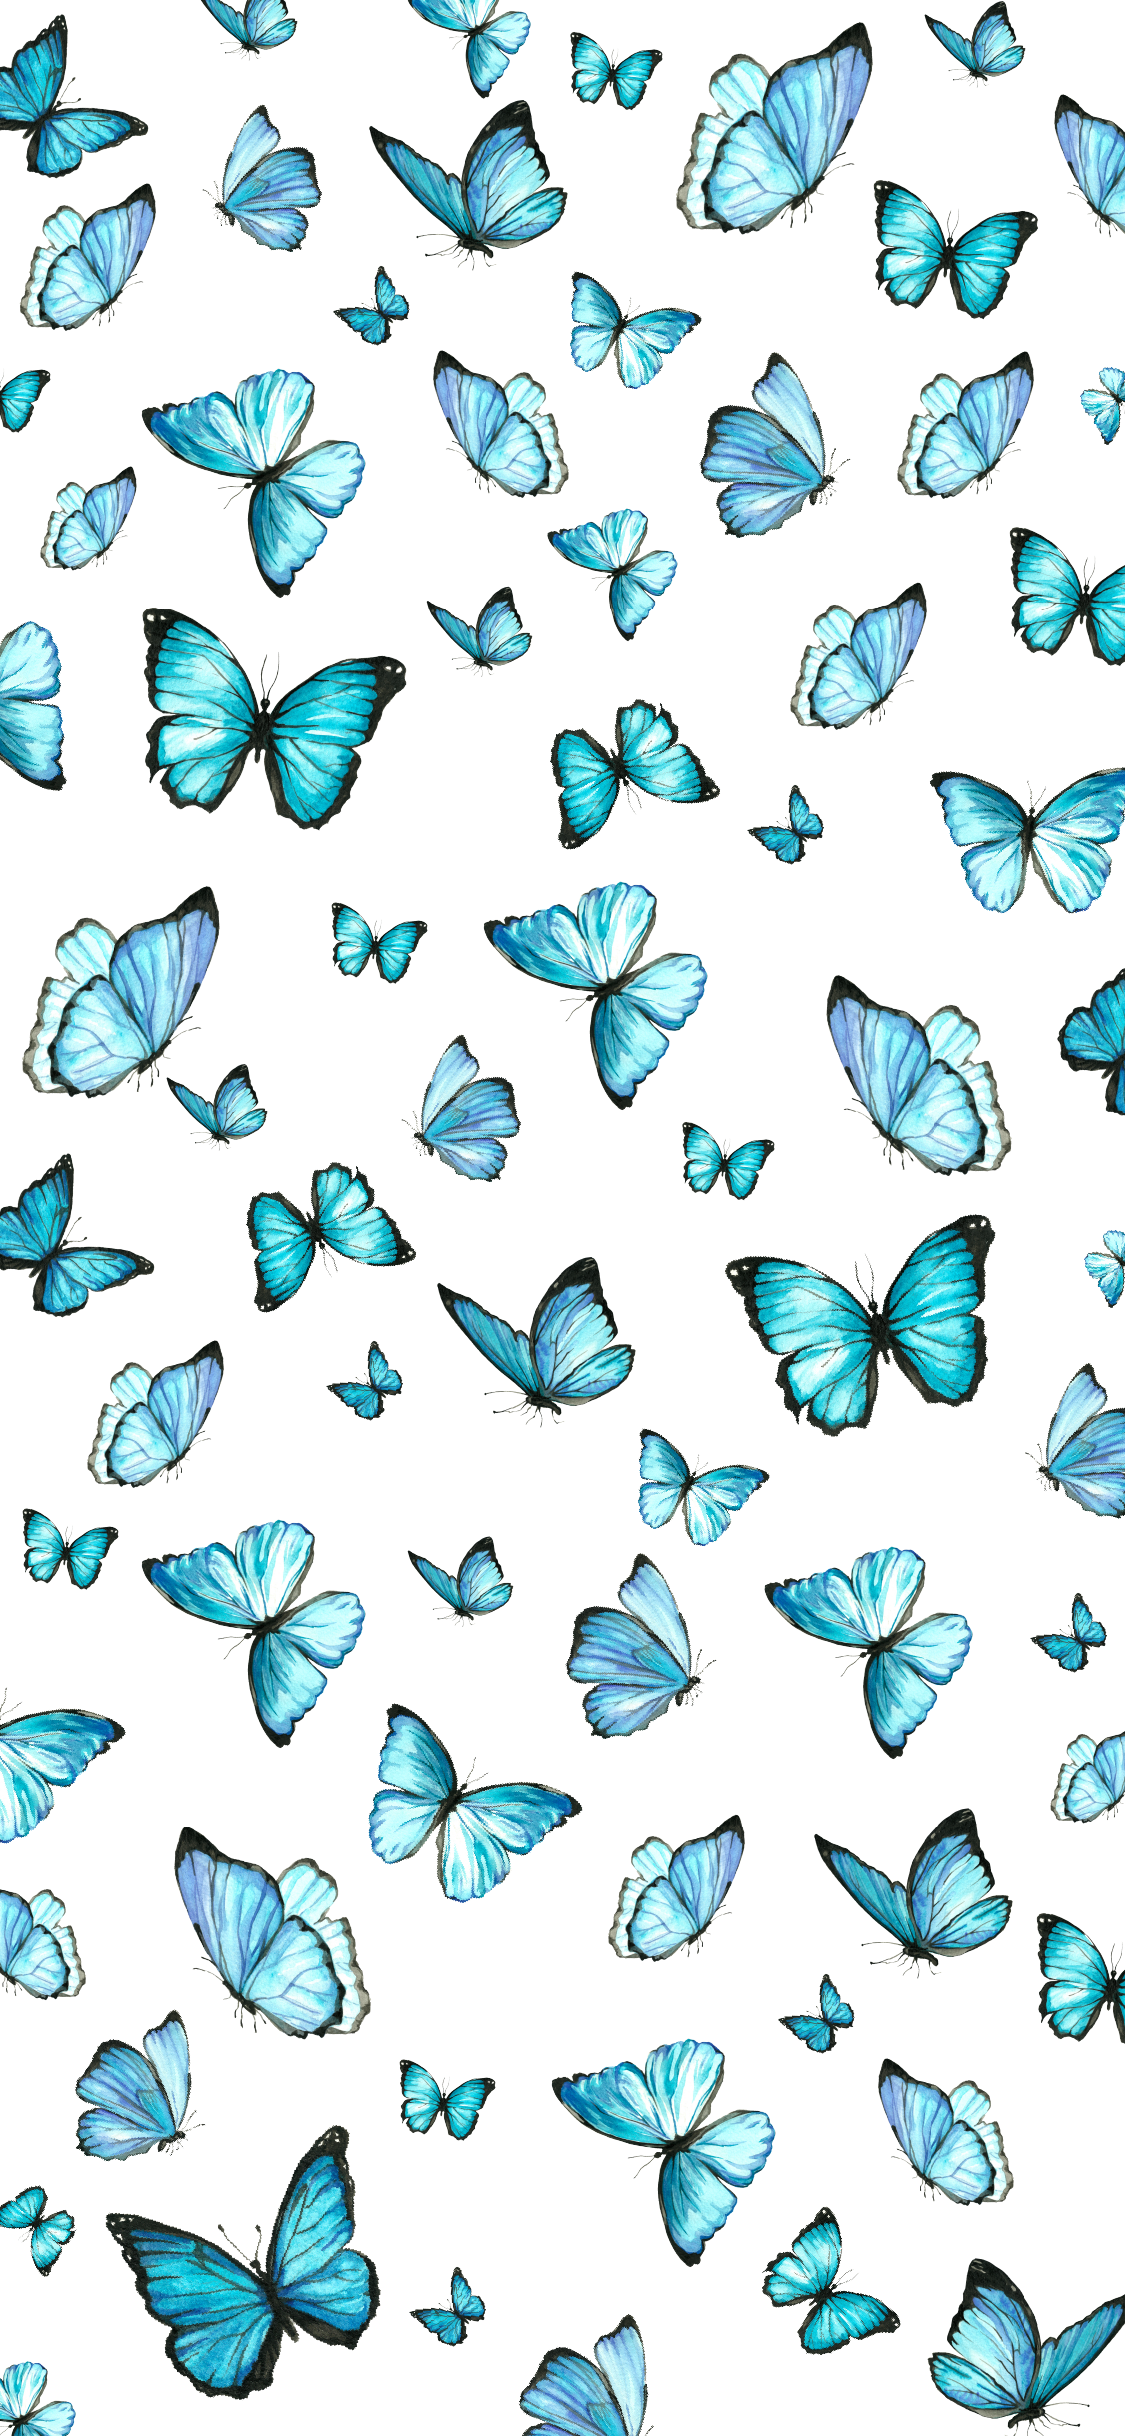 Blue Butterfly Aesthetic Wallpapers Top Free Blue Butterfly Aesthetic Backgrounds Wallpaperaccess